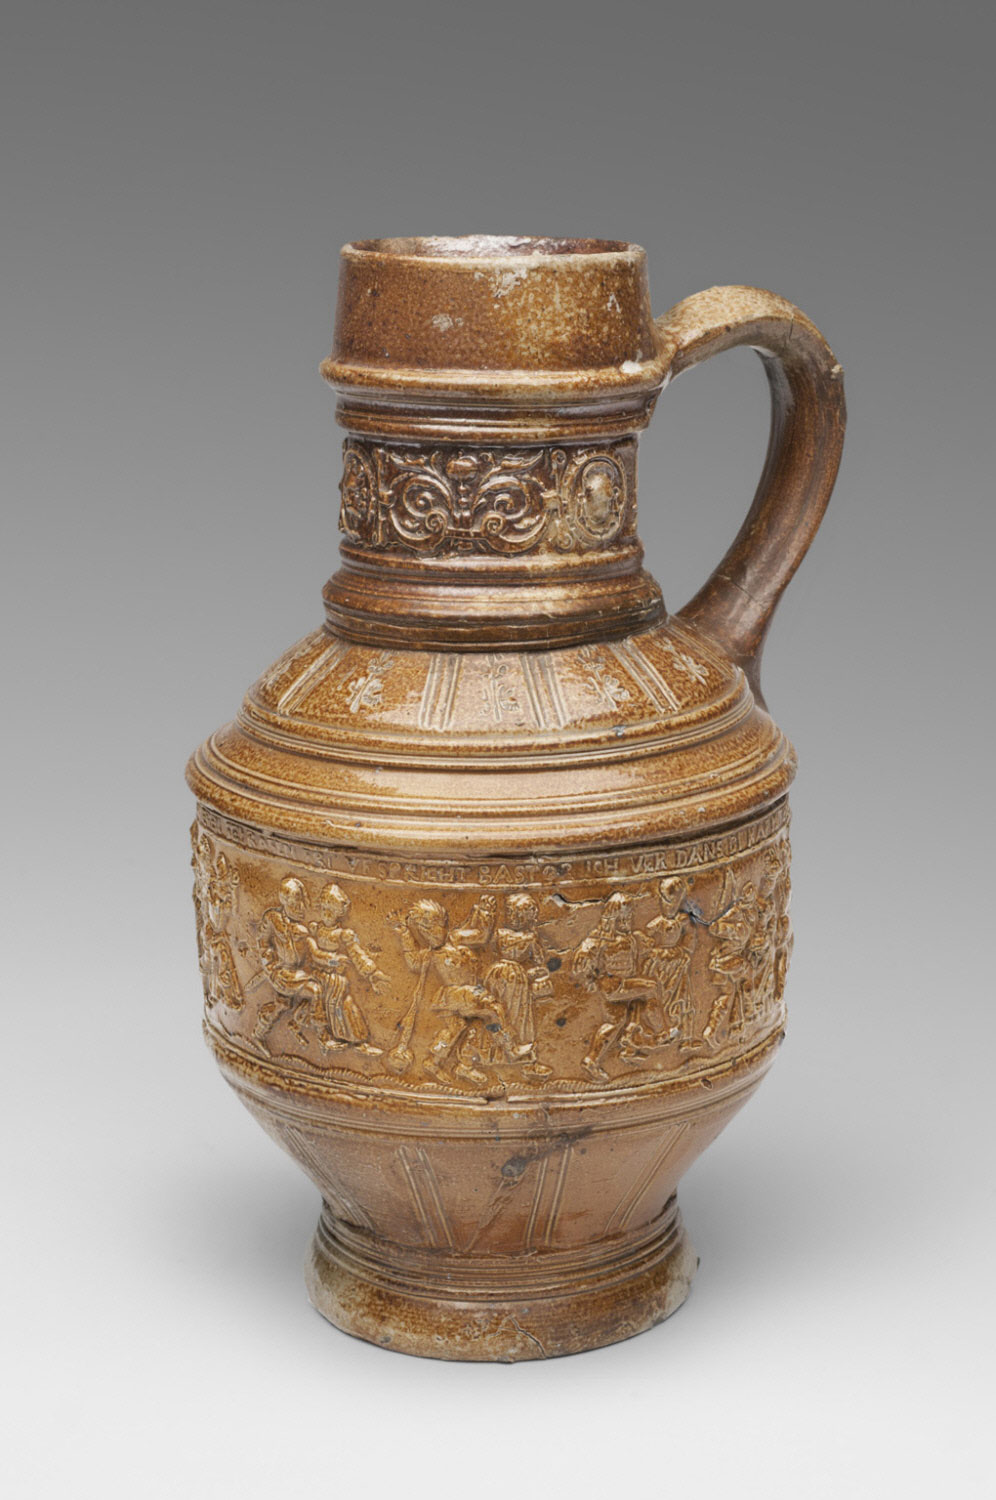 Jug with a Peasant Dance